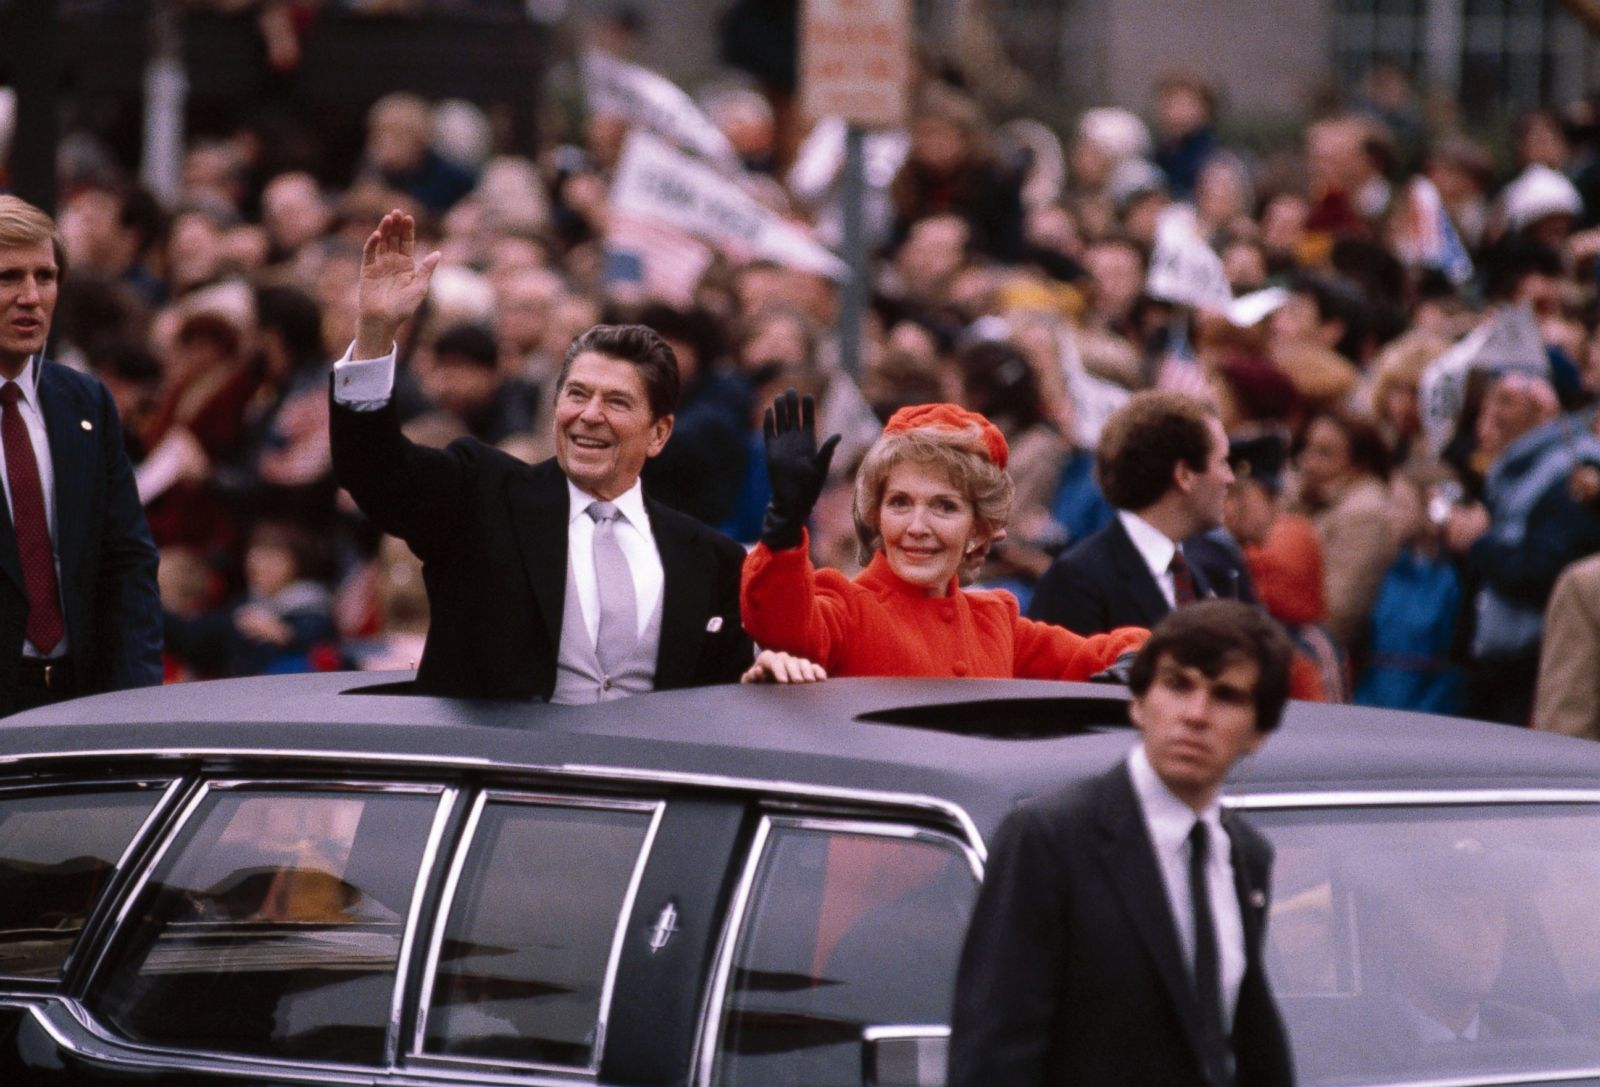 ronald reagan's second inaugural address 1985 Studymode - premium and free essays, term papers & book notes  essays resource center sign up.